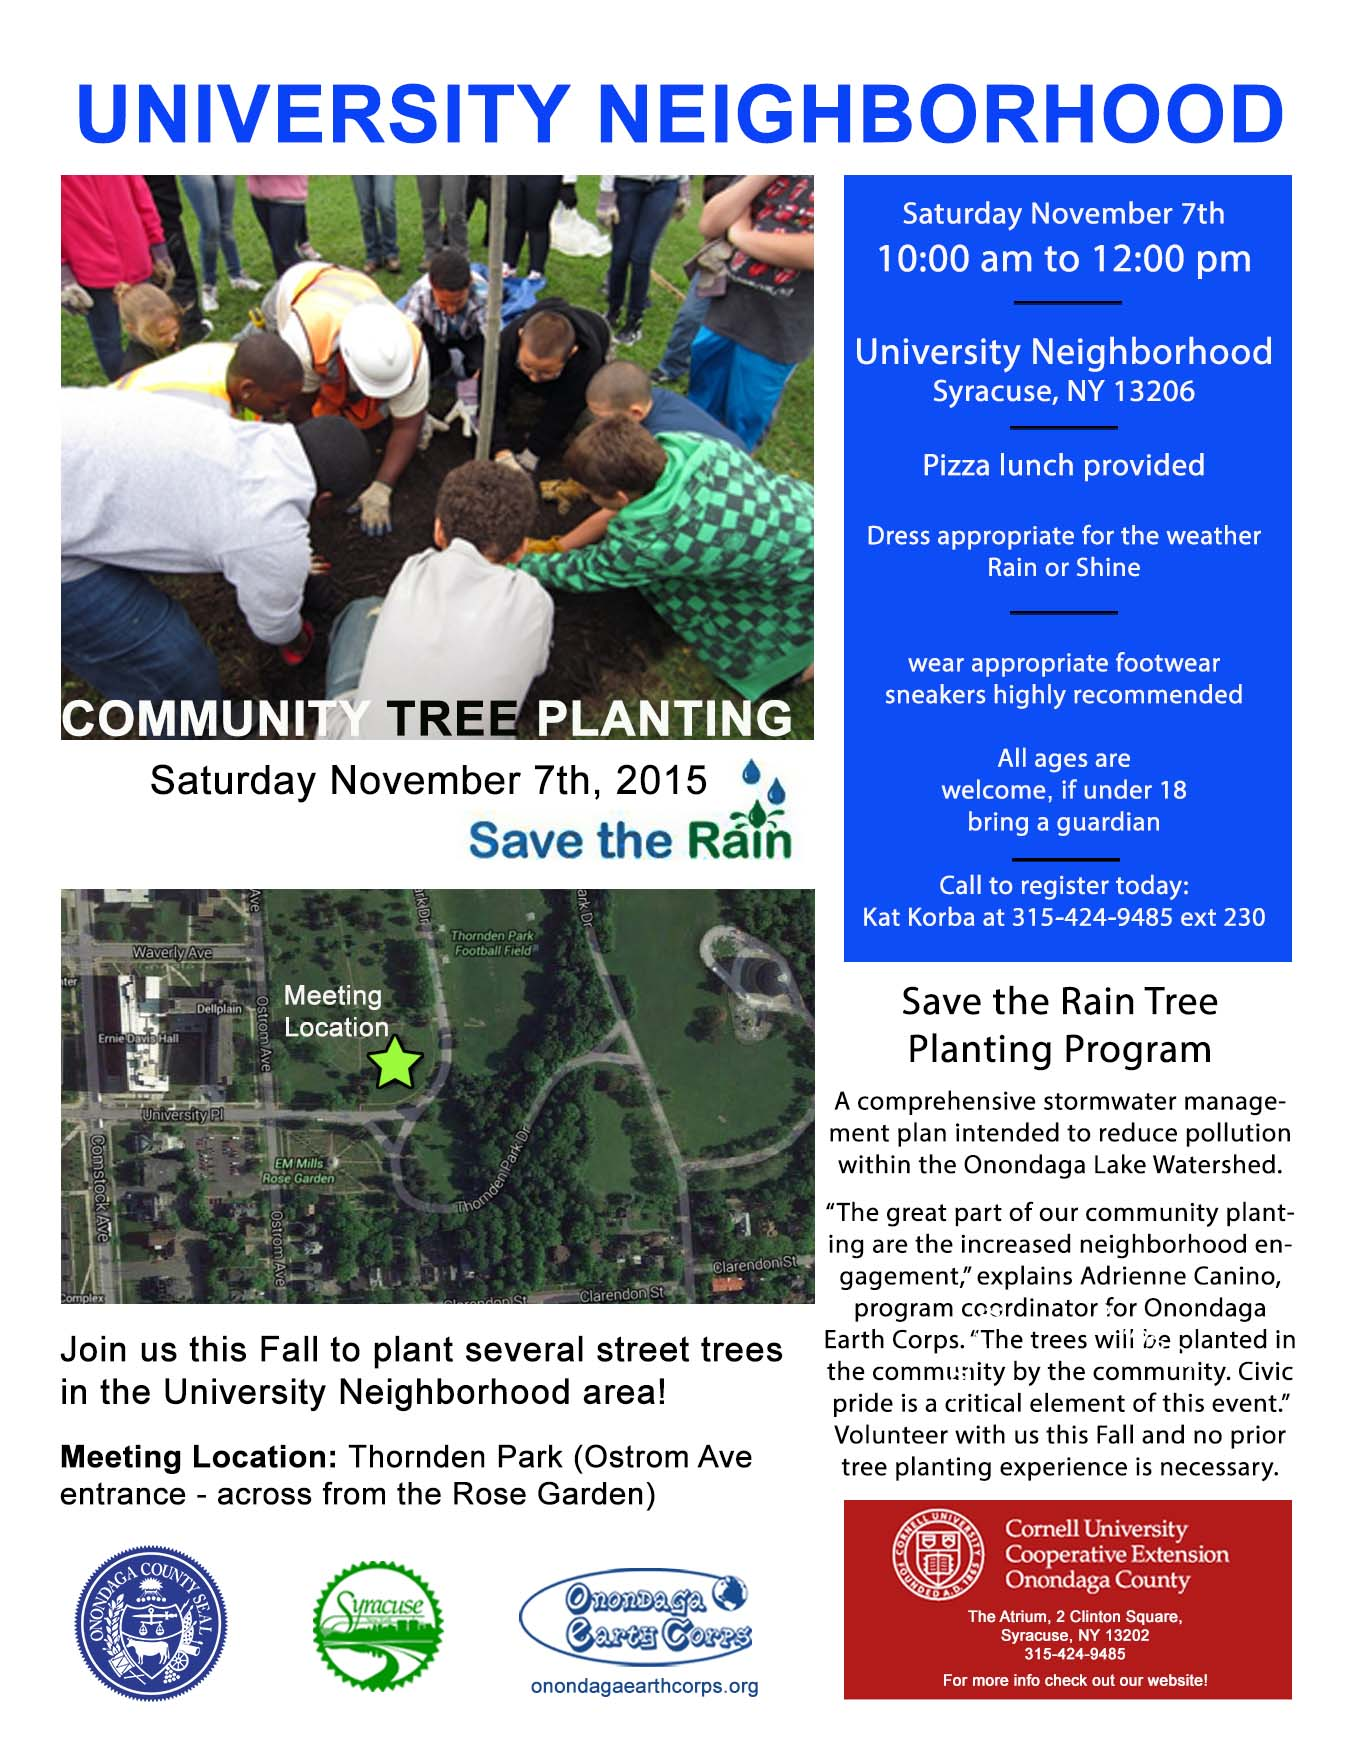 University neighborhood tree planting flyer